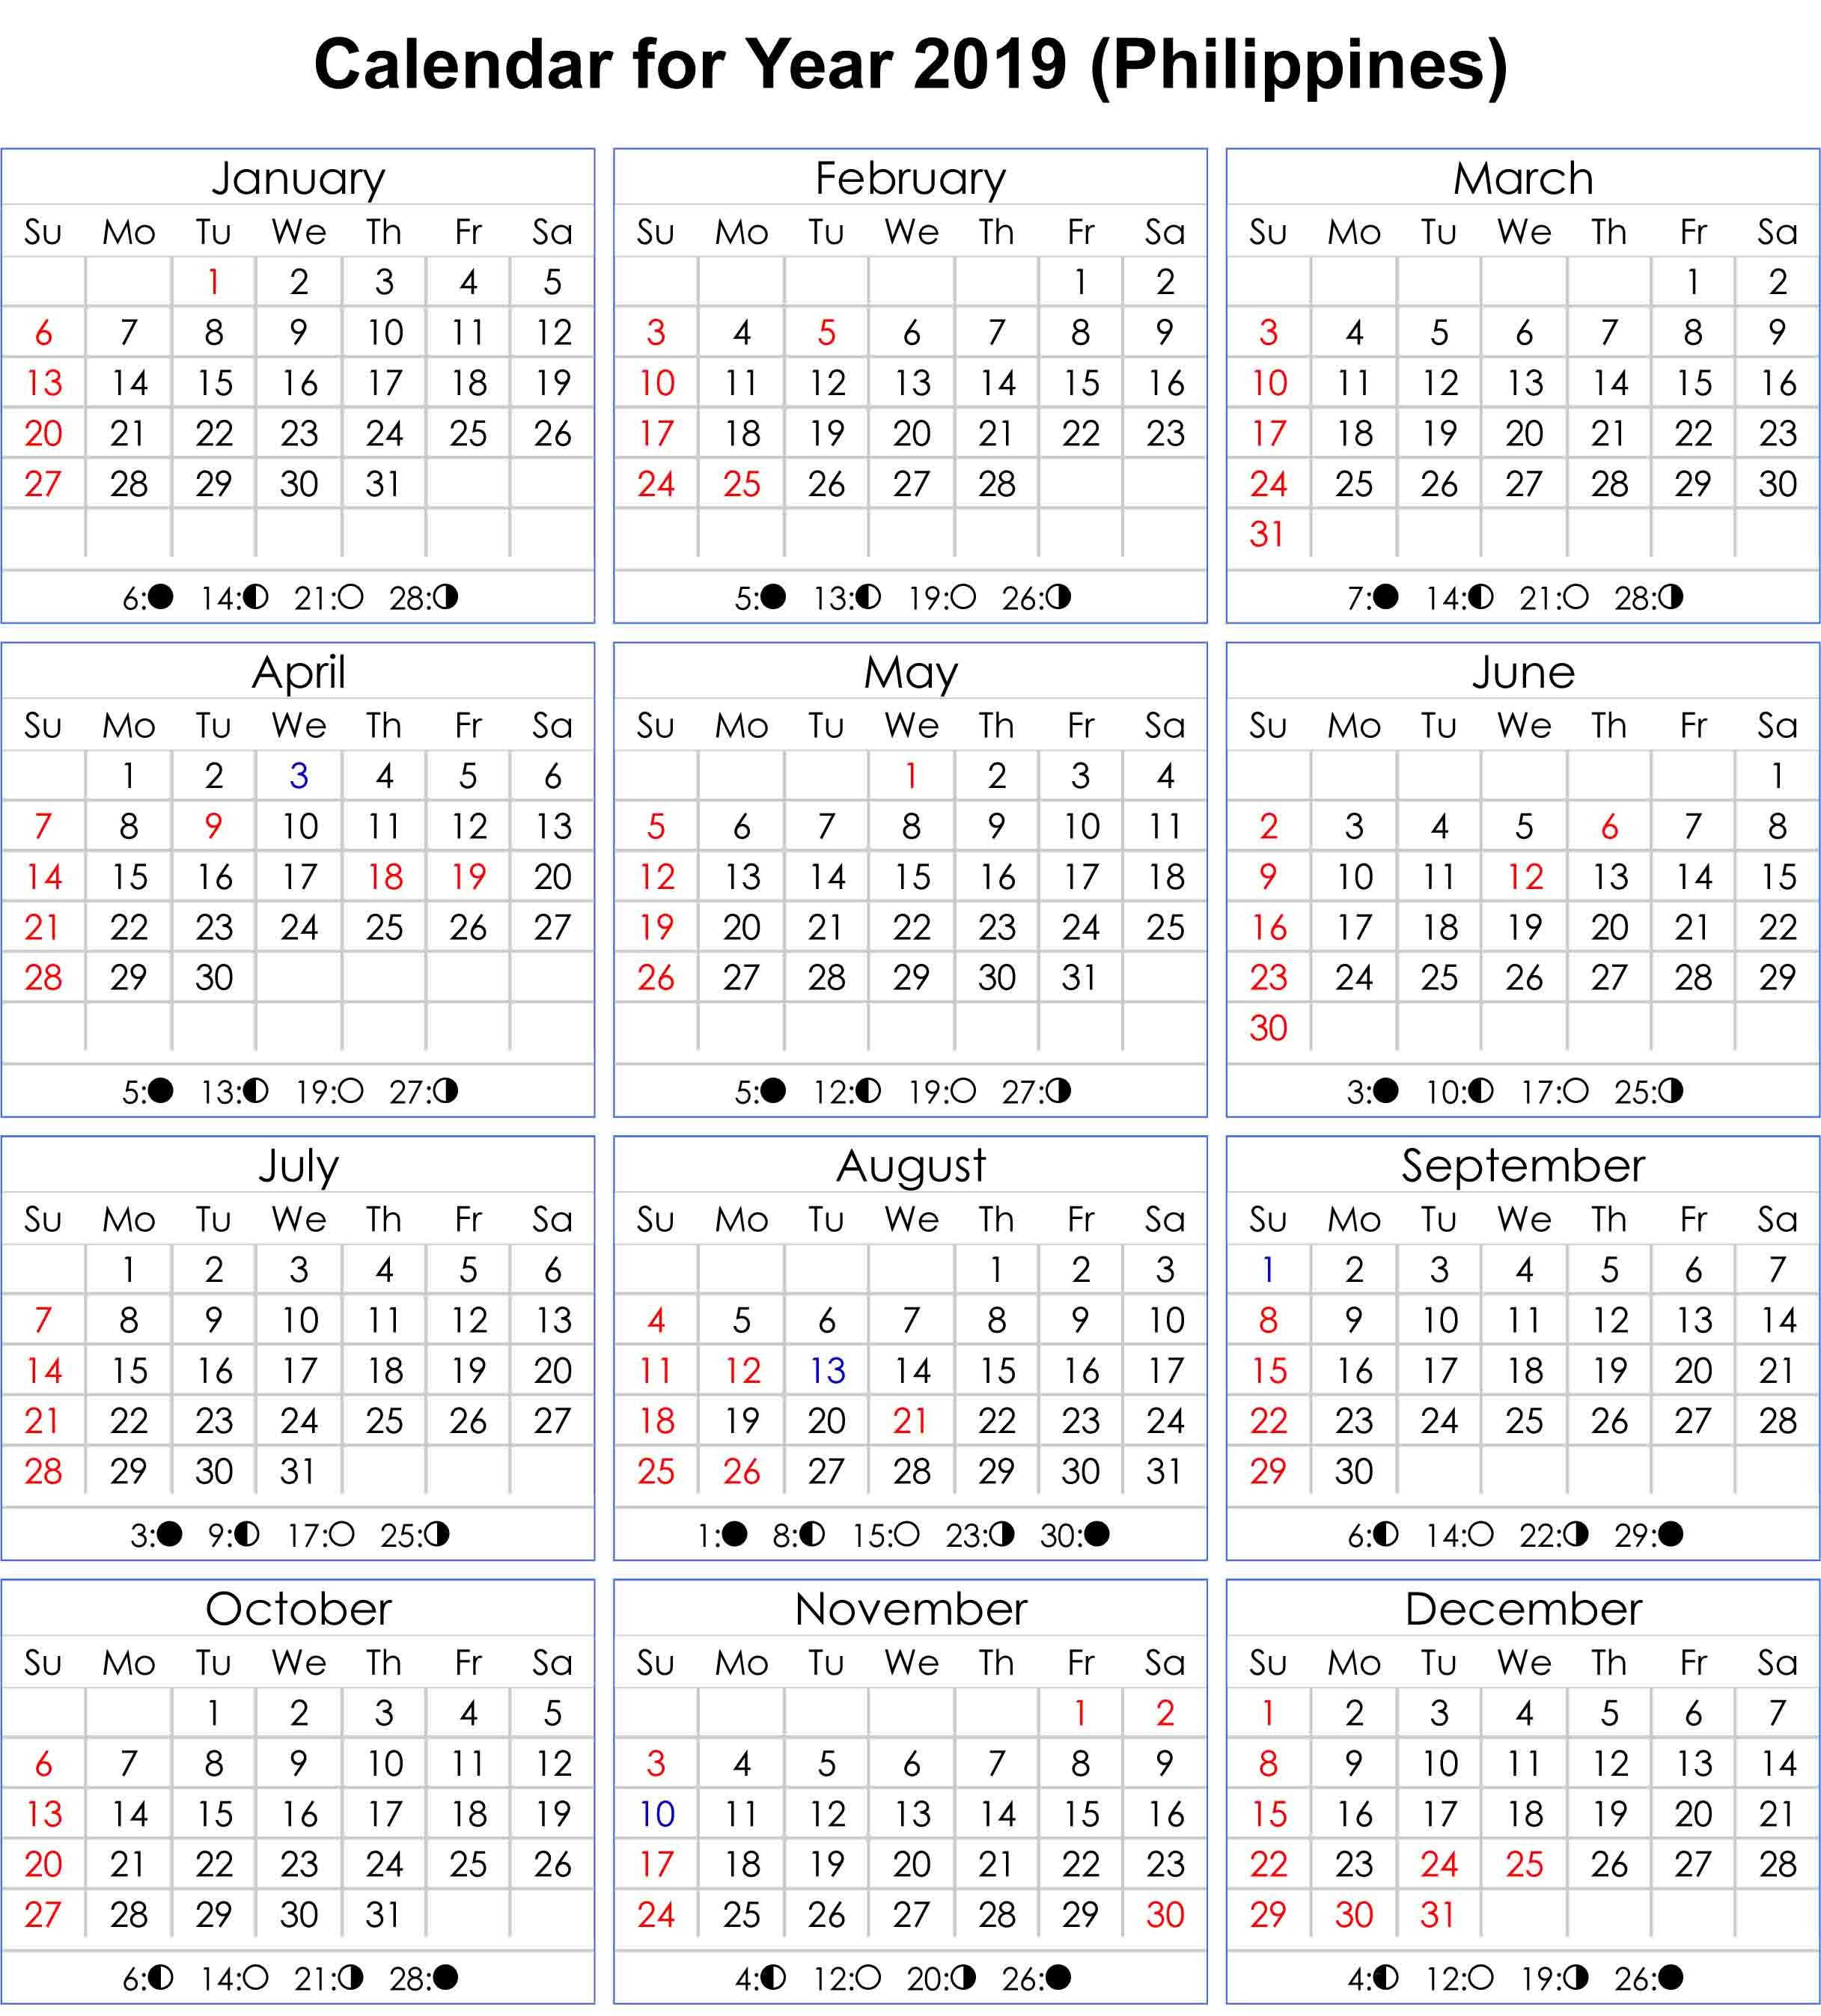 2019 Calendar Moon Philippines 2019 Calendar with Moon Phases | Calendar 2019 | 2019